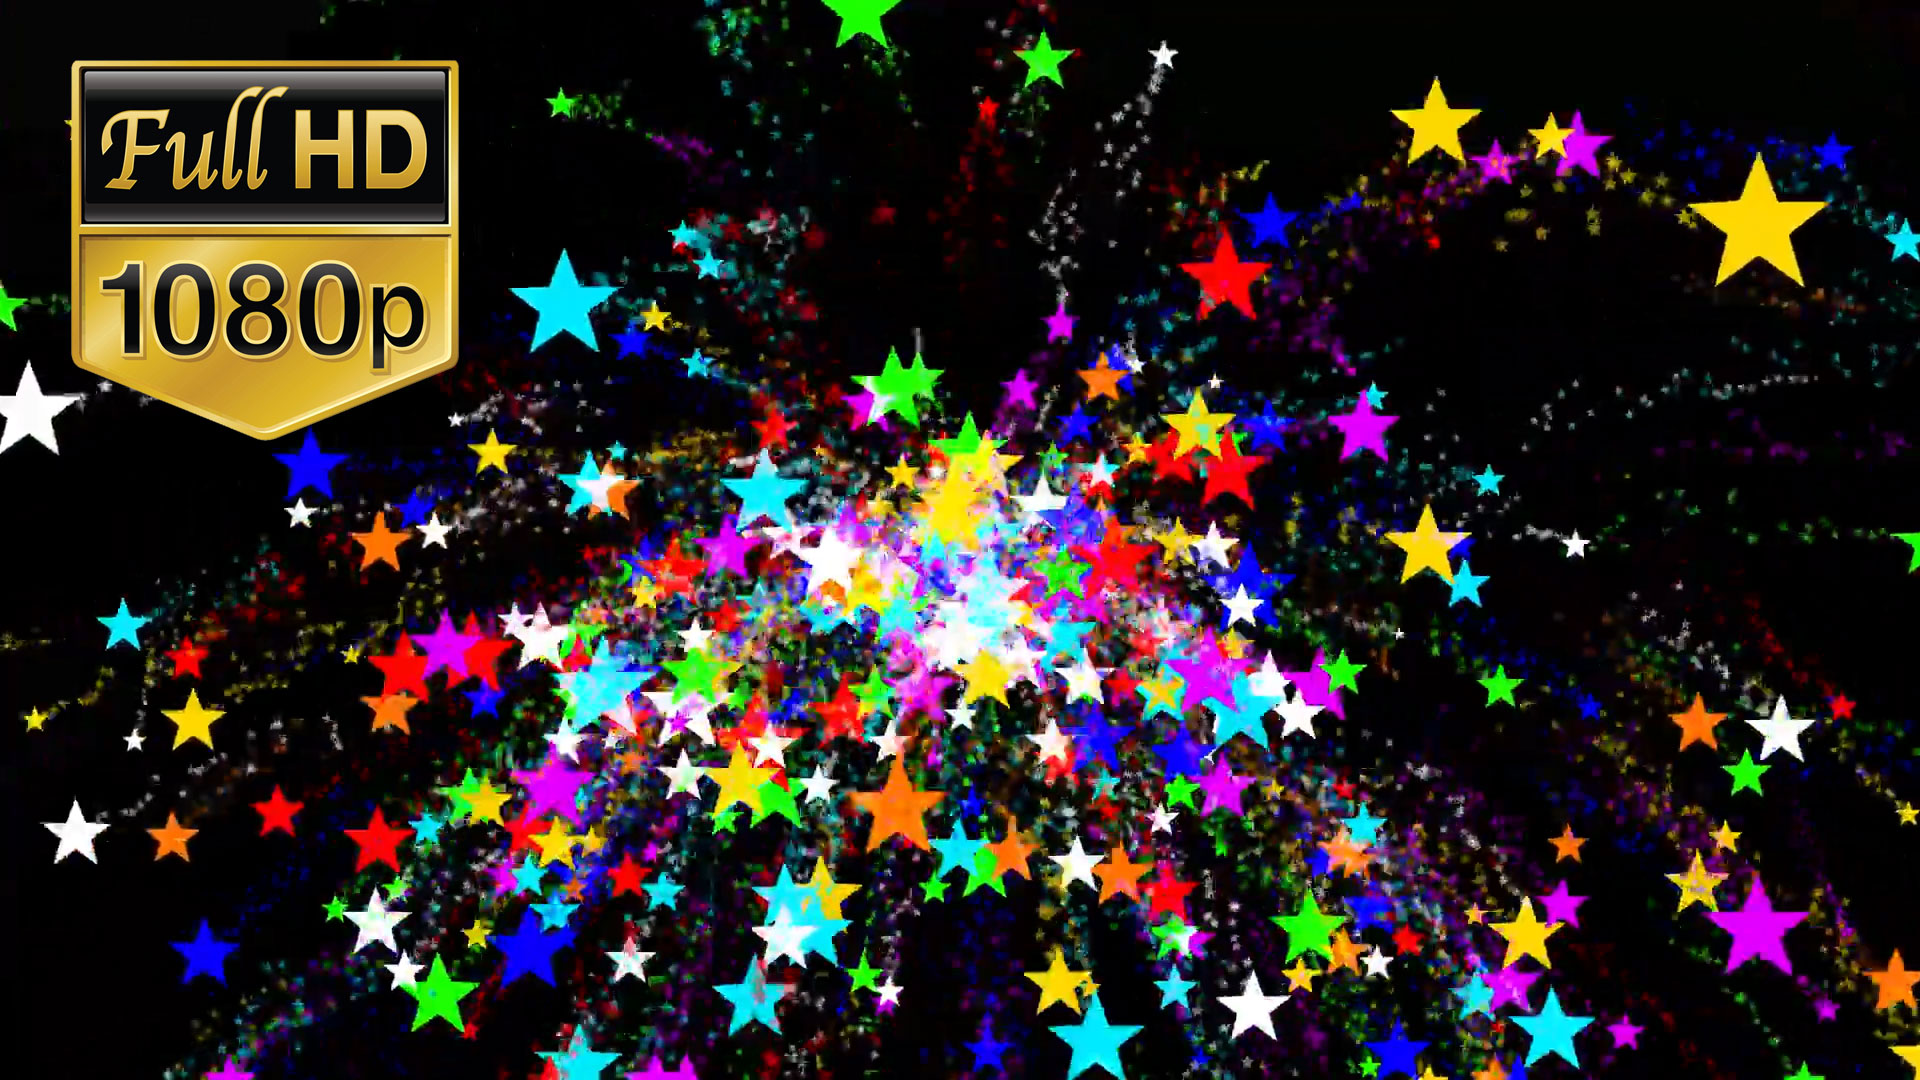 Royalty Free Stars Motion Background HD